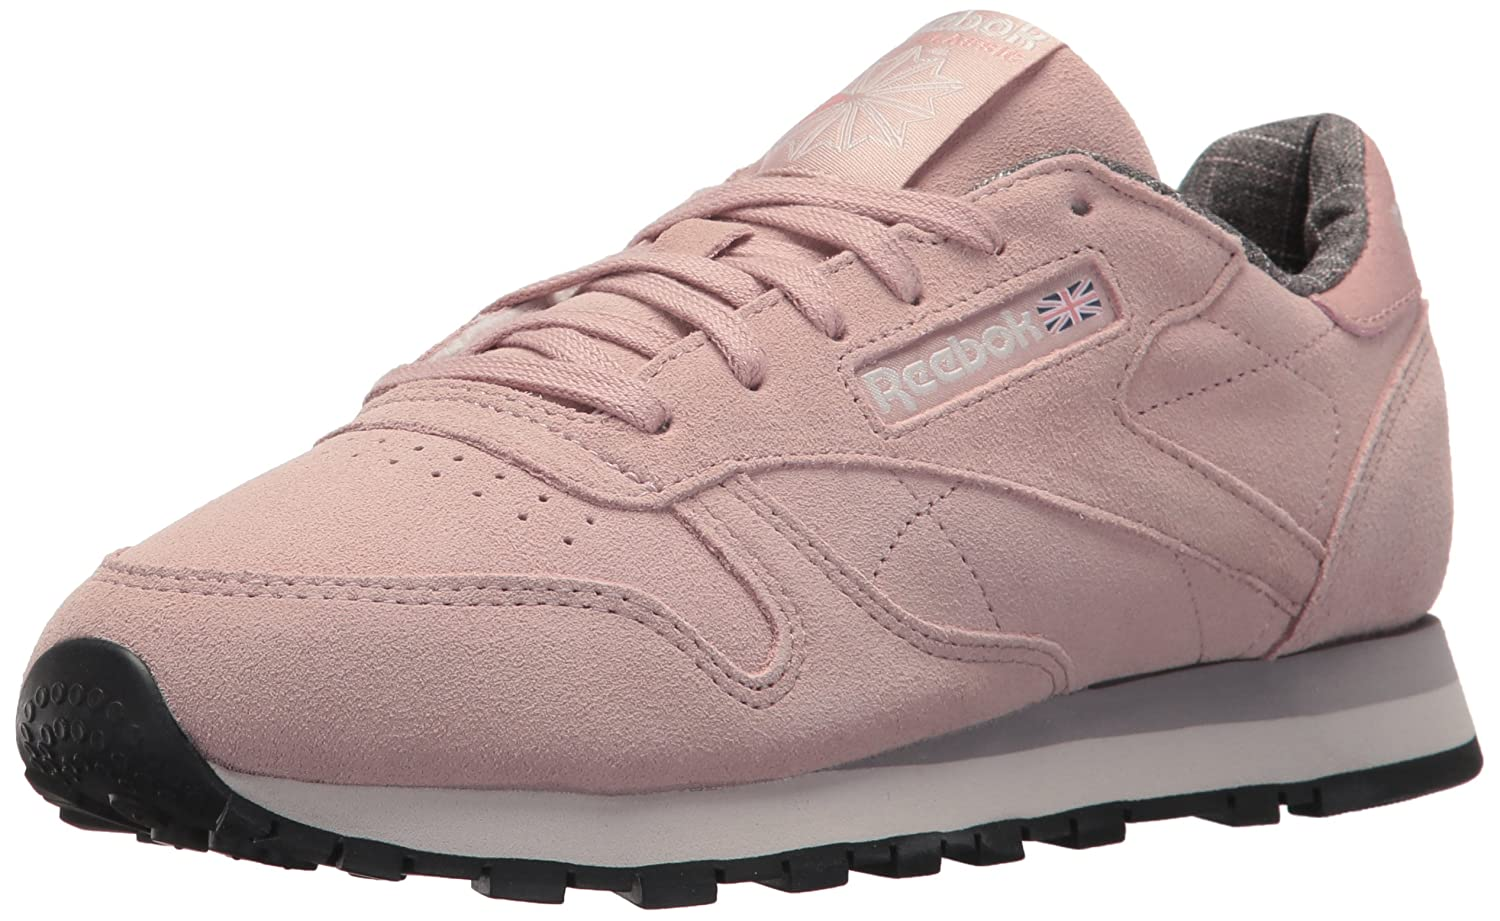 Reebok Women's Cl Lthr W&w Sneaker B074V1QV6Y 9.5 B(M) US|Shell Pink/Whisper Grey/Leather